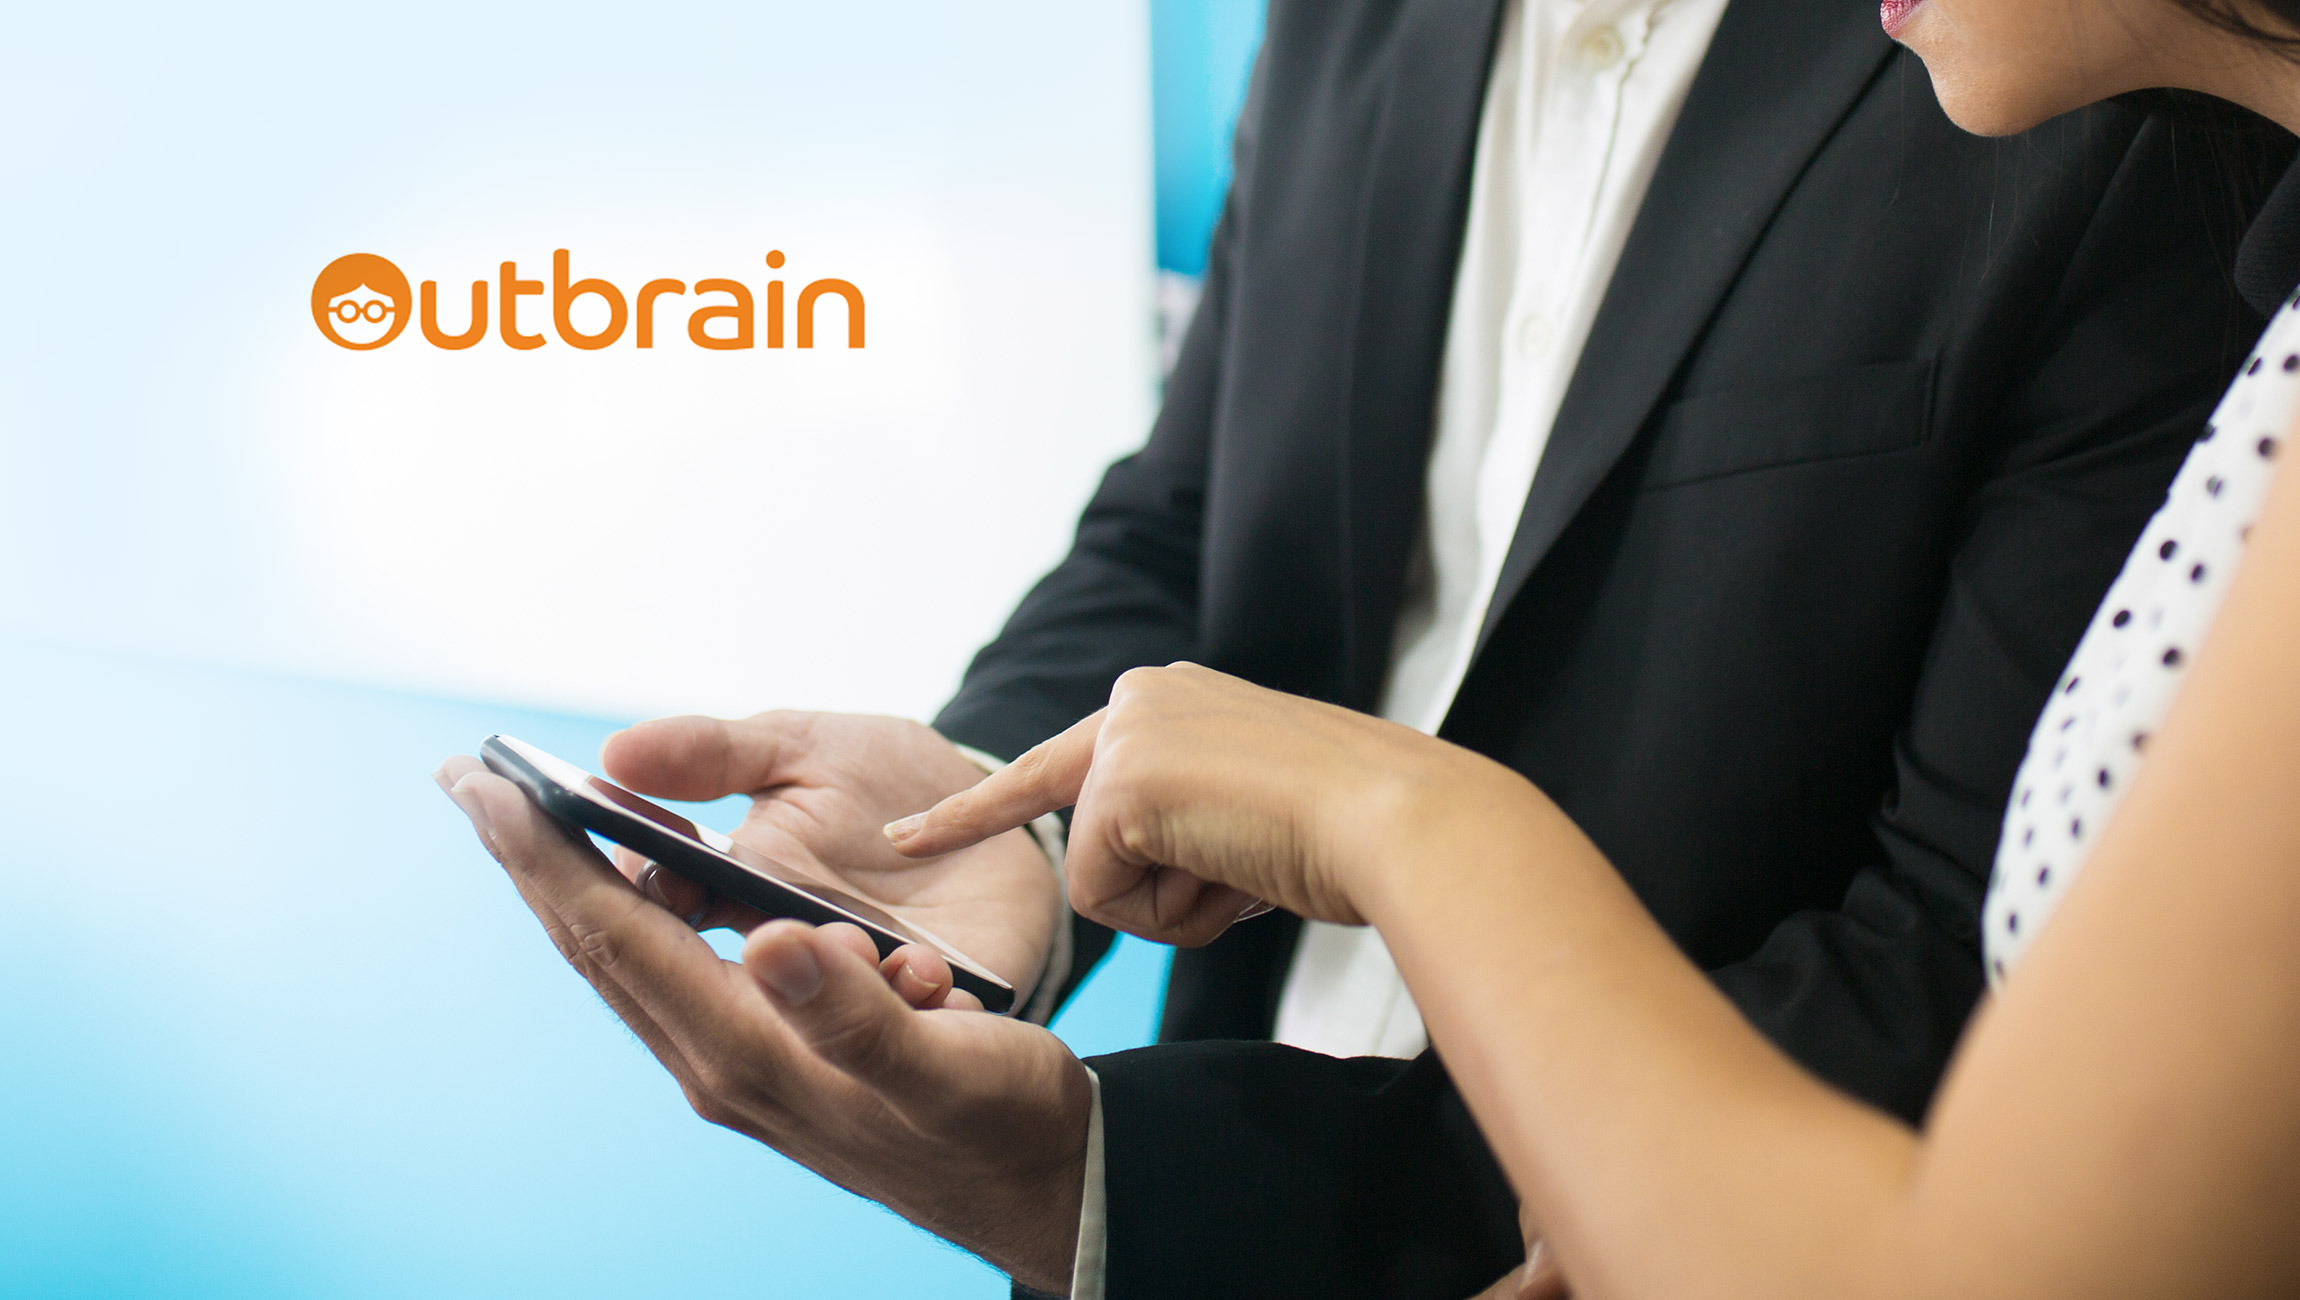 Outbrain Completes Acquisition of Ligatus and Announces New Executive Leadership Team for Europe